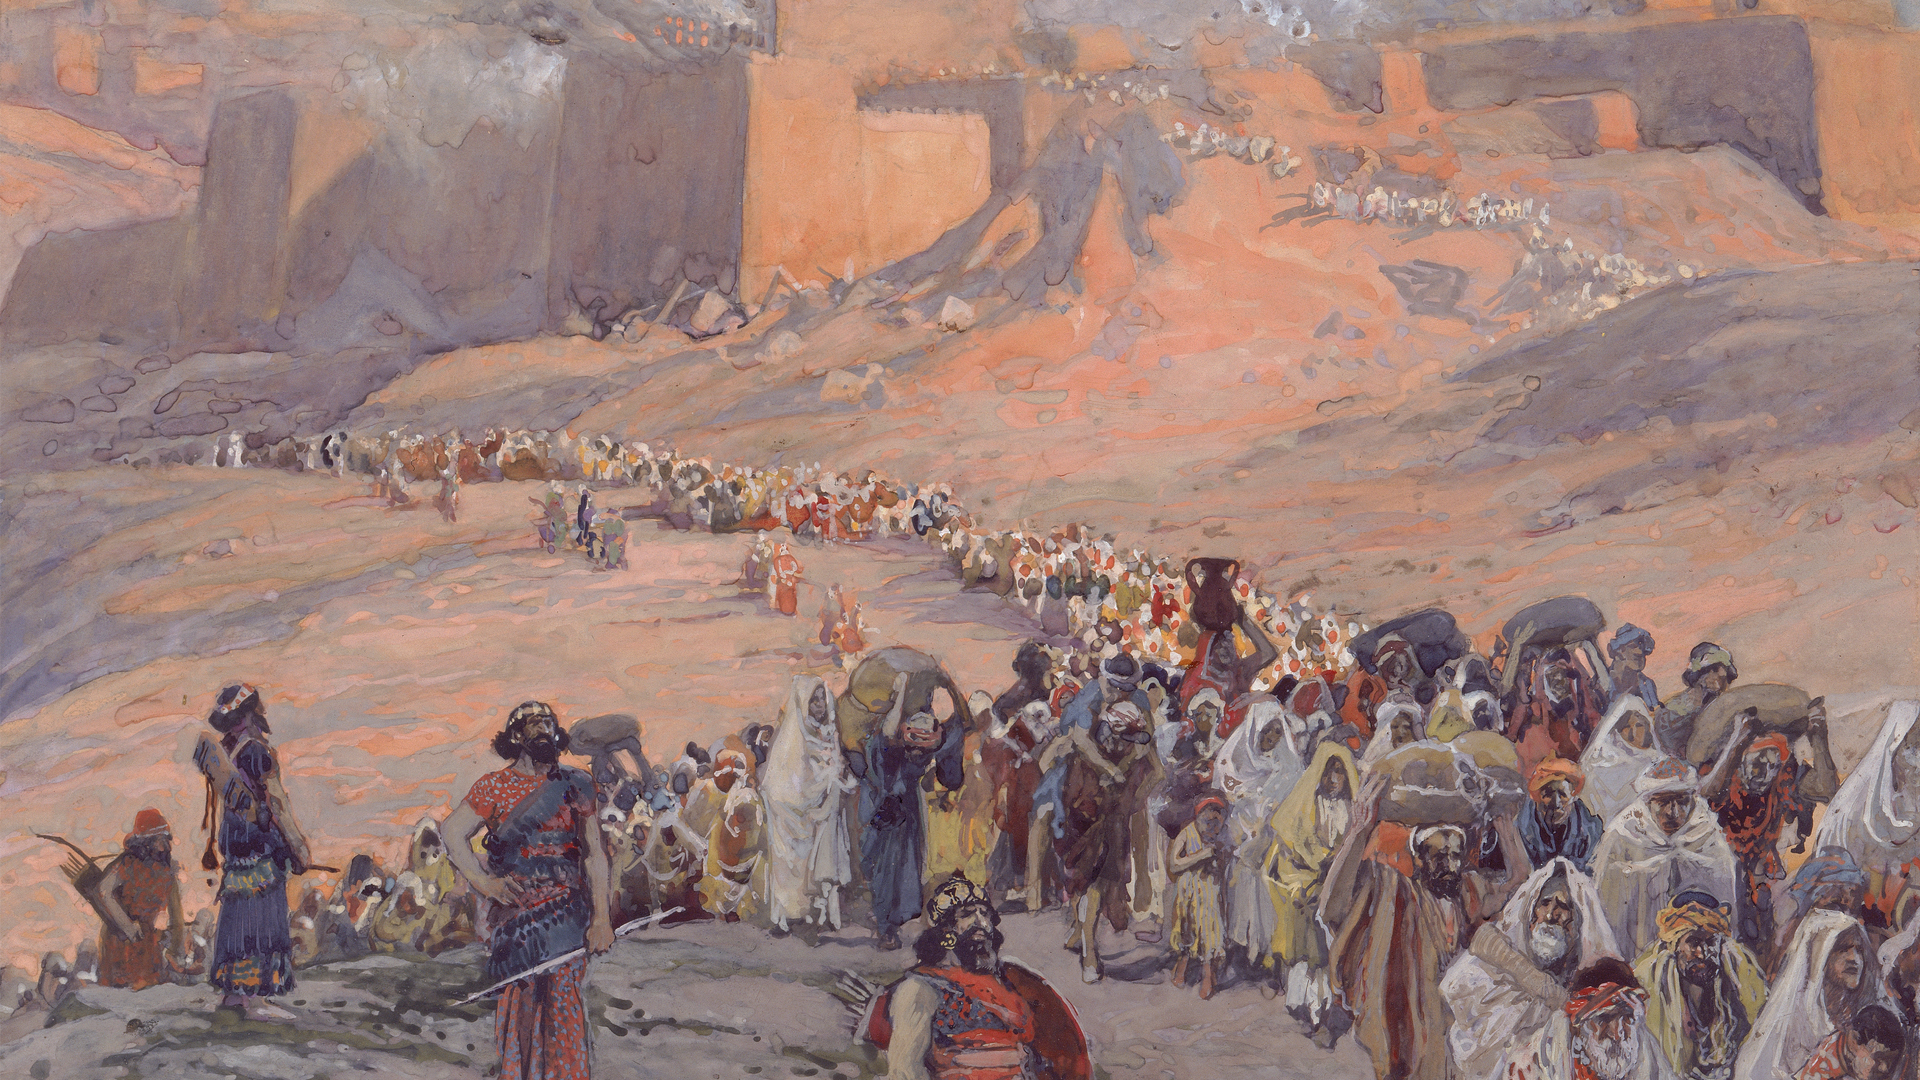 James Tissot painting depicting Jewish captives fleeing Jerusalem in 6th century BCE